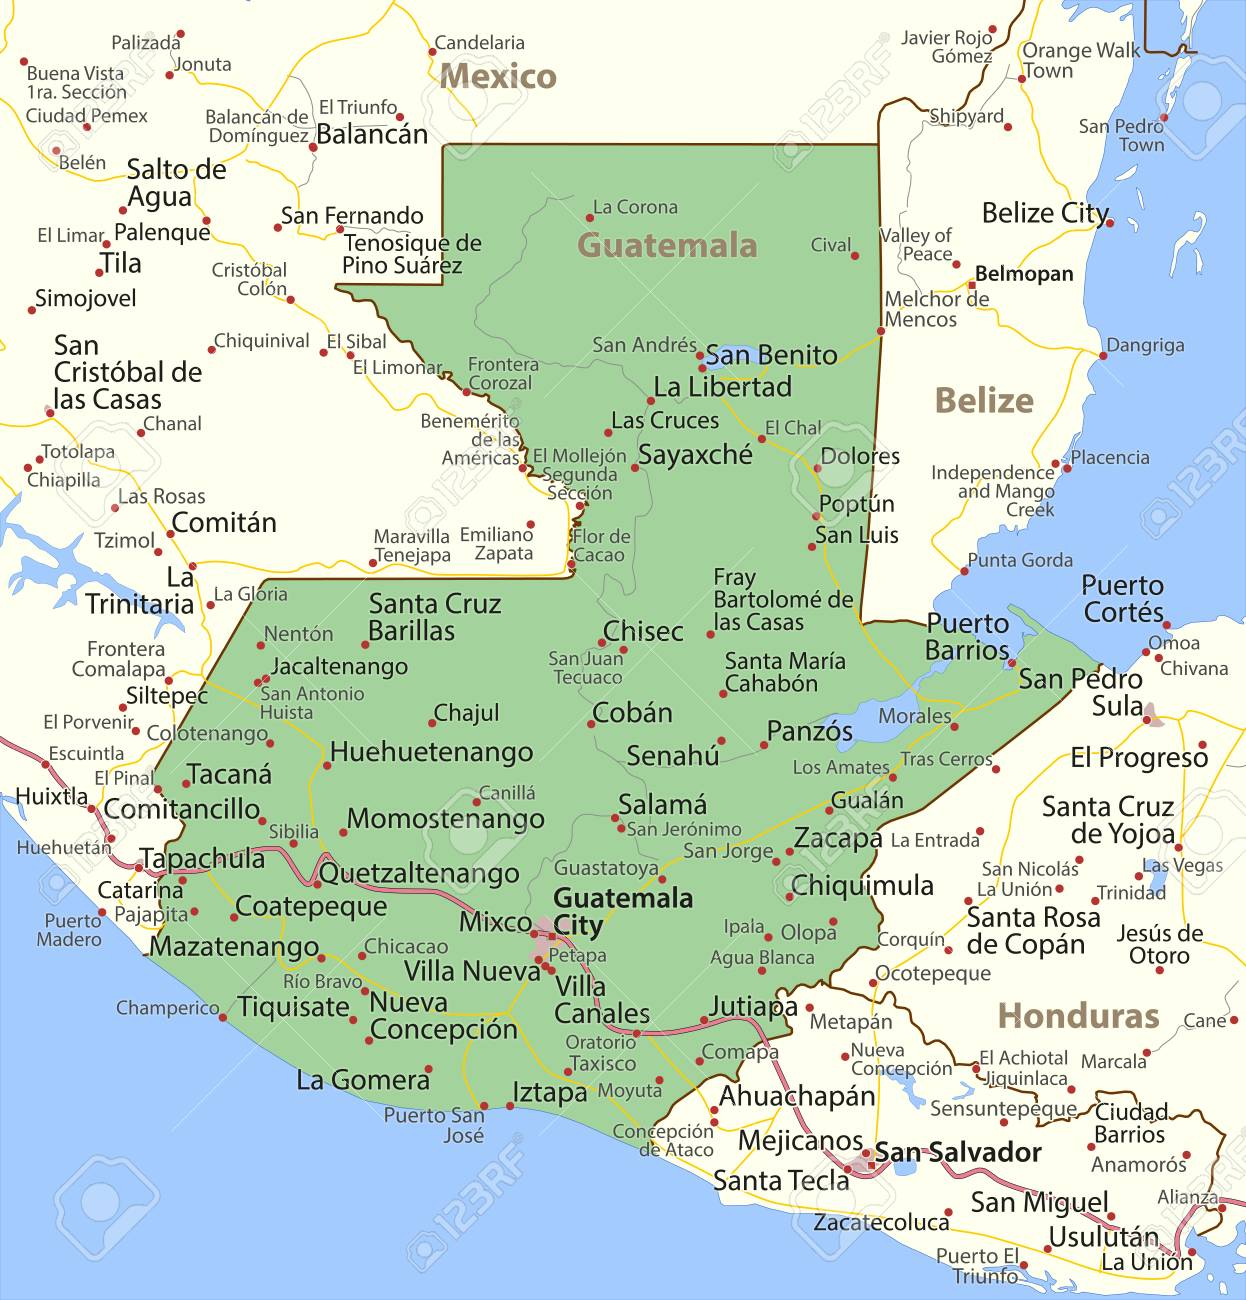 Map of Guatemala. Shows country borders, urban areas, place names..